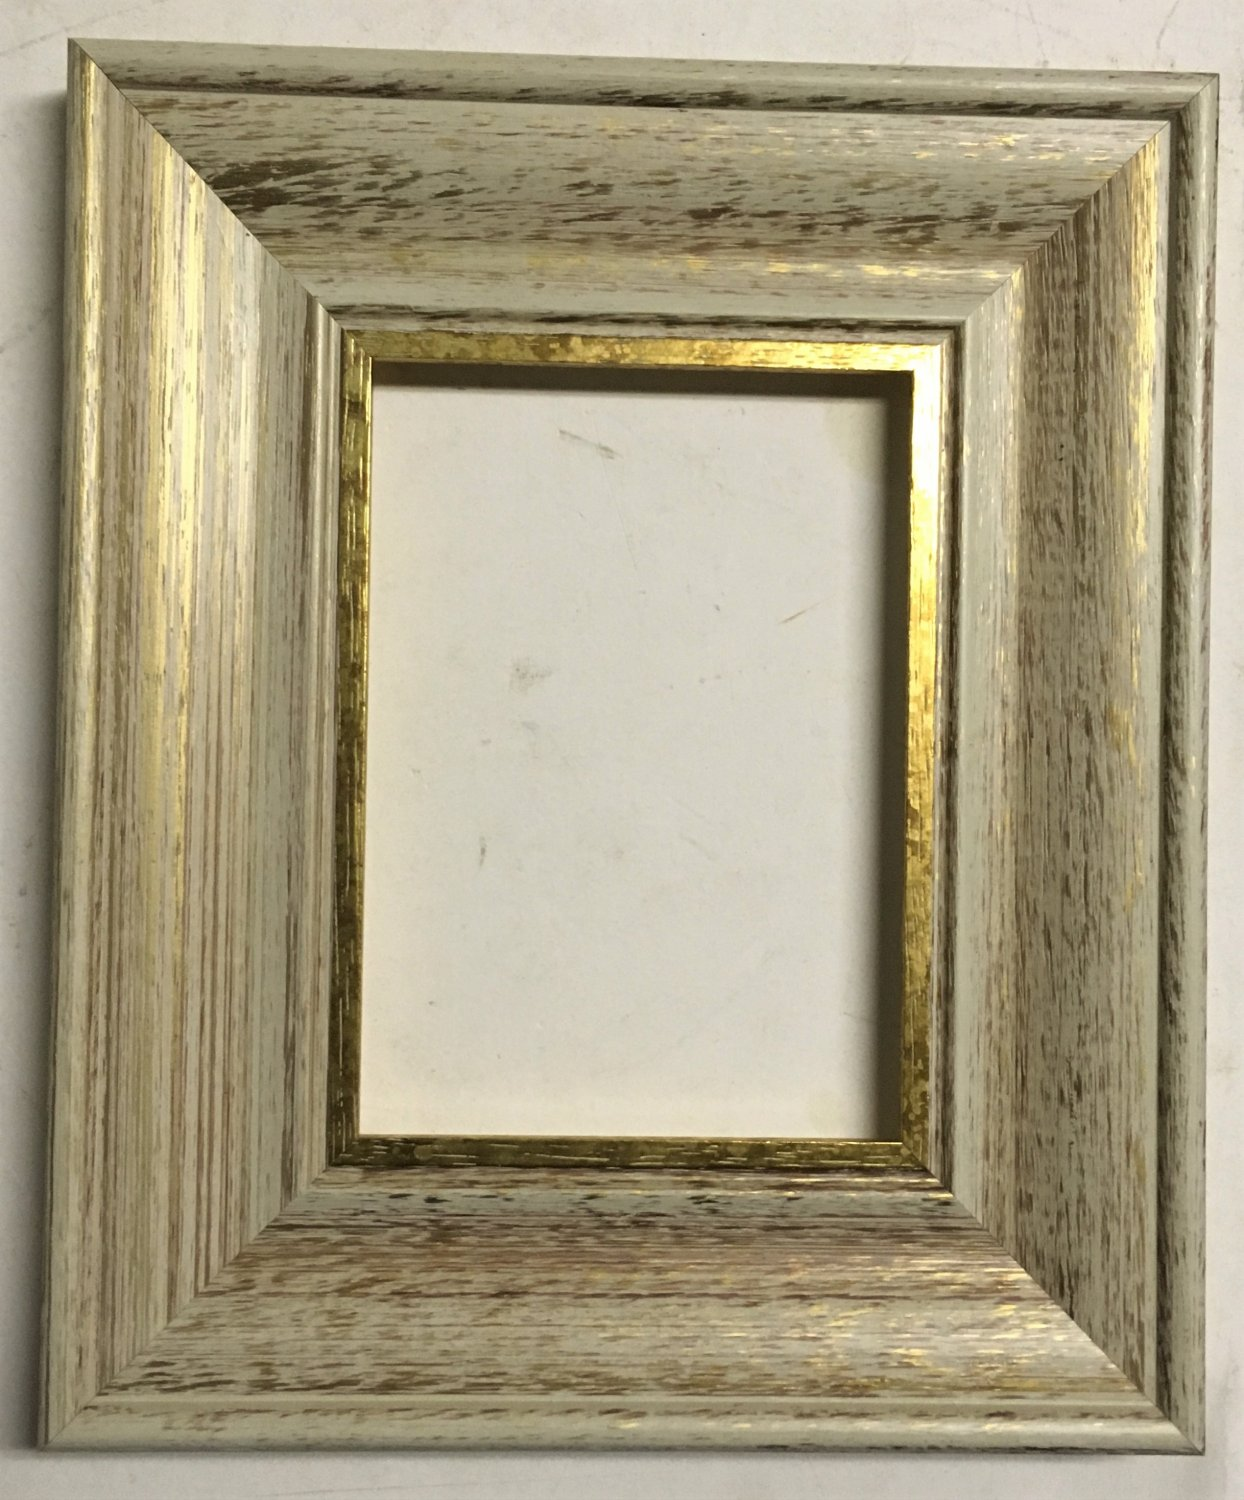 "14 x 18 2-1/4"" White w/Gold Lip Picture Frame"